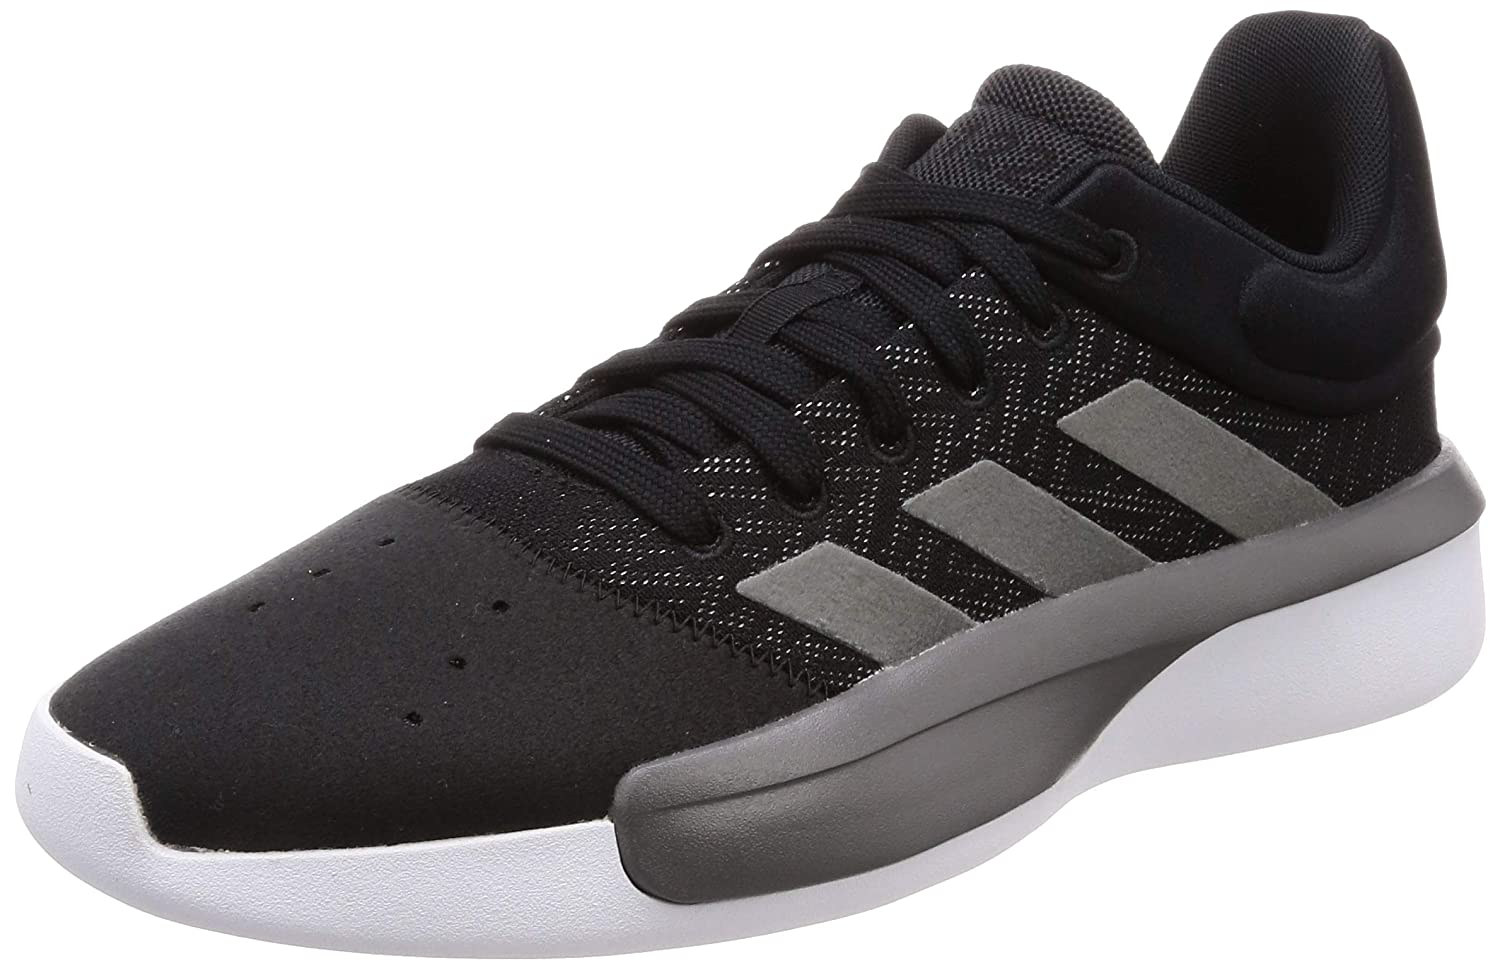 the latest 78663 6a6f6 adidas Pro Adversary Low 2019, Chaussures de Basketball Homme Homme Homme  48 EUNoir